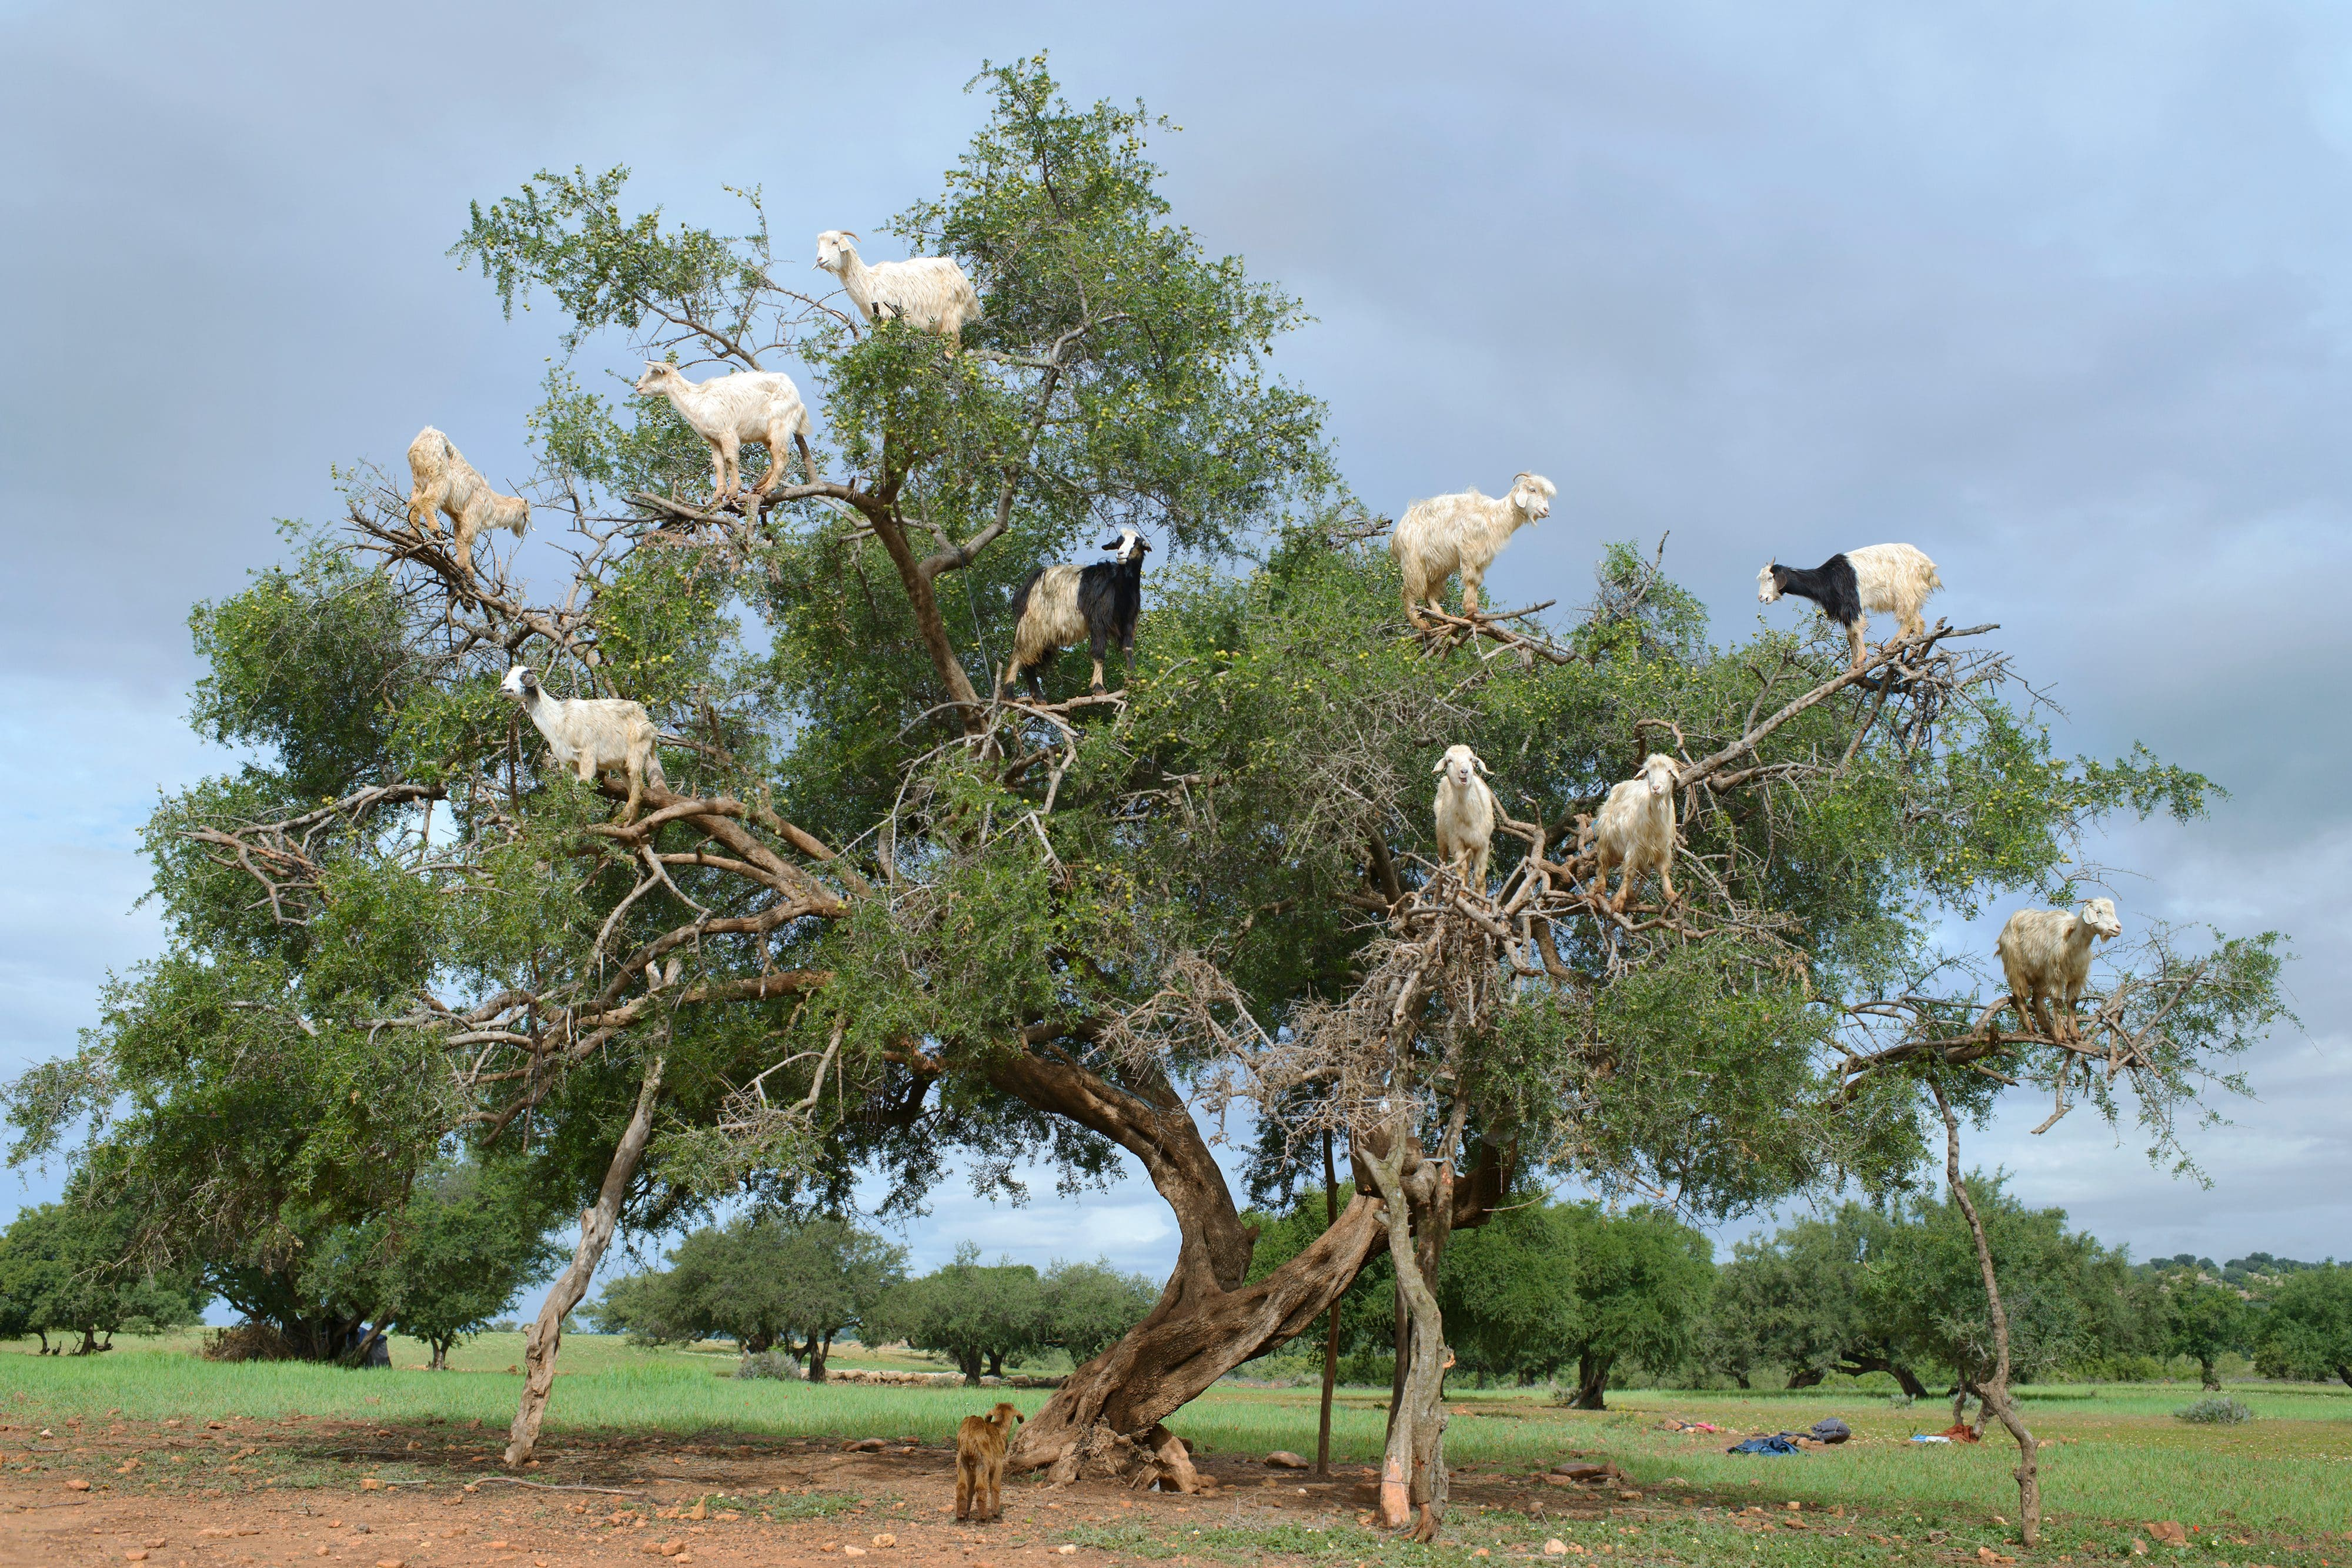 Goats perched in a tree in Marrakech